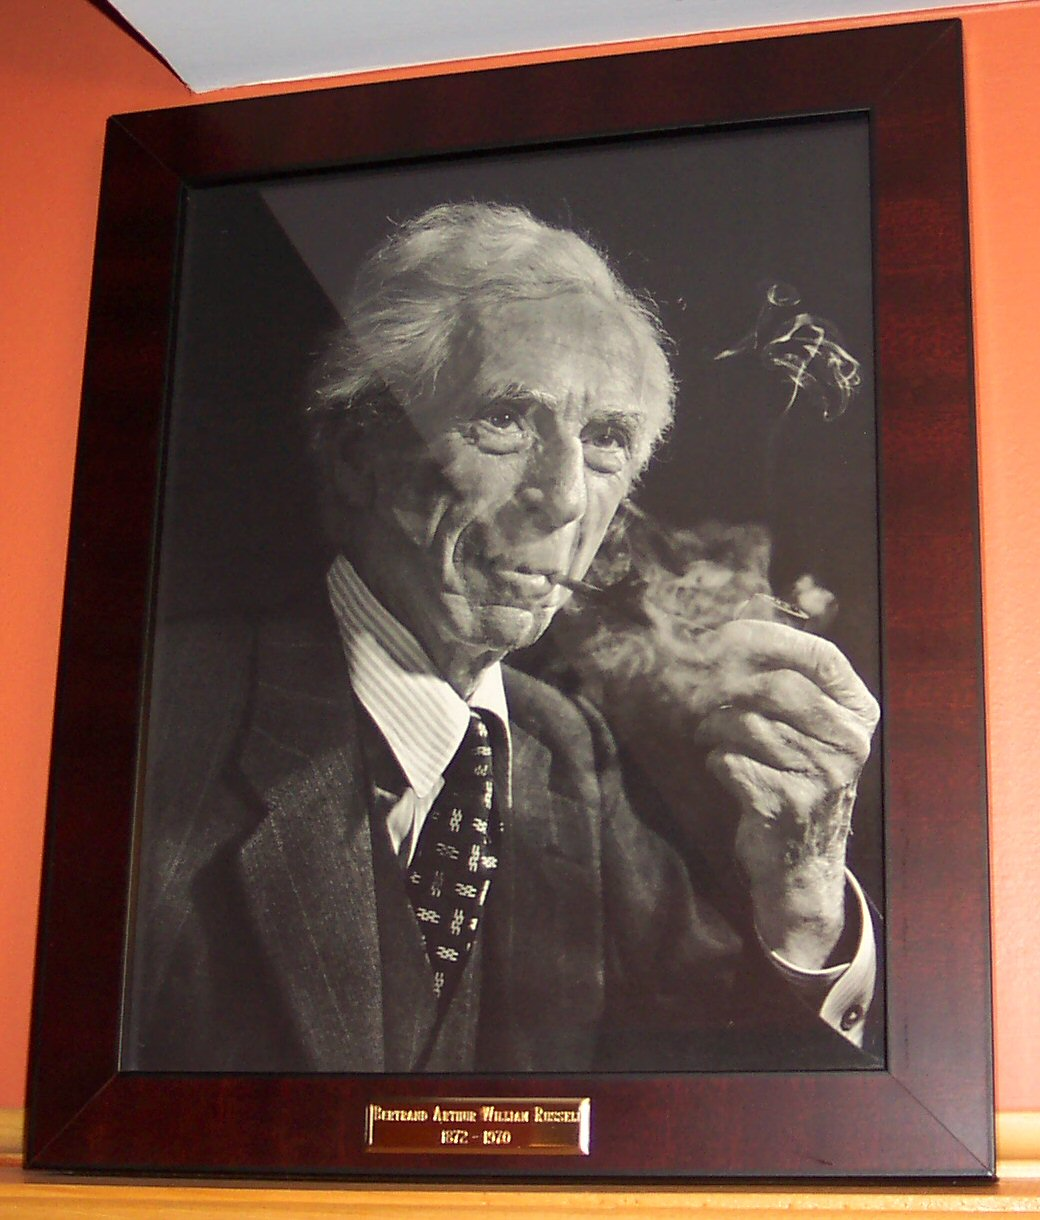 in praise of idleness by bertrand russell essay New common app essays cause and effect of stress essay conclusion essay writing machines japanese male 2004 of in other praise bertrand russell and idleness.